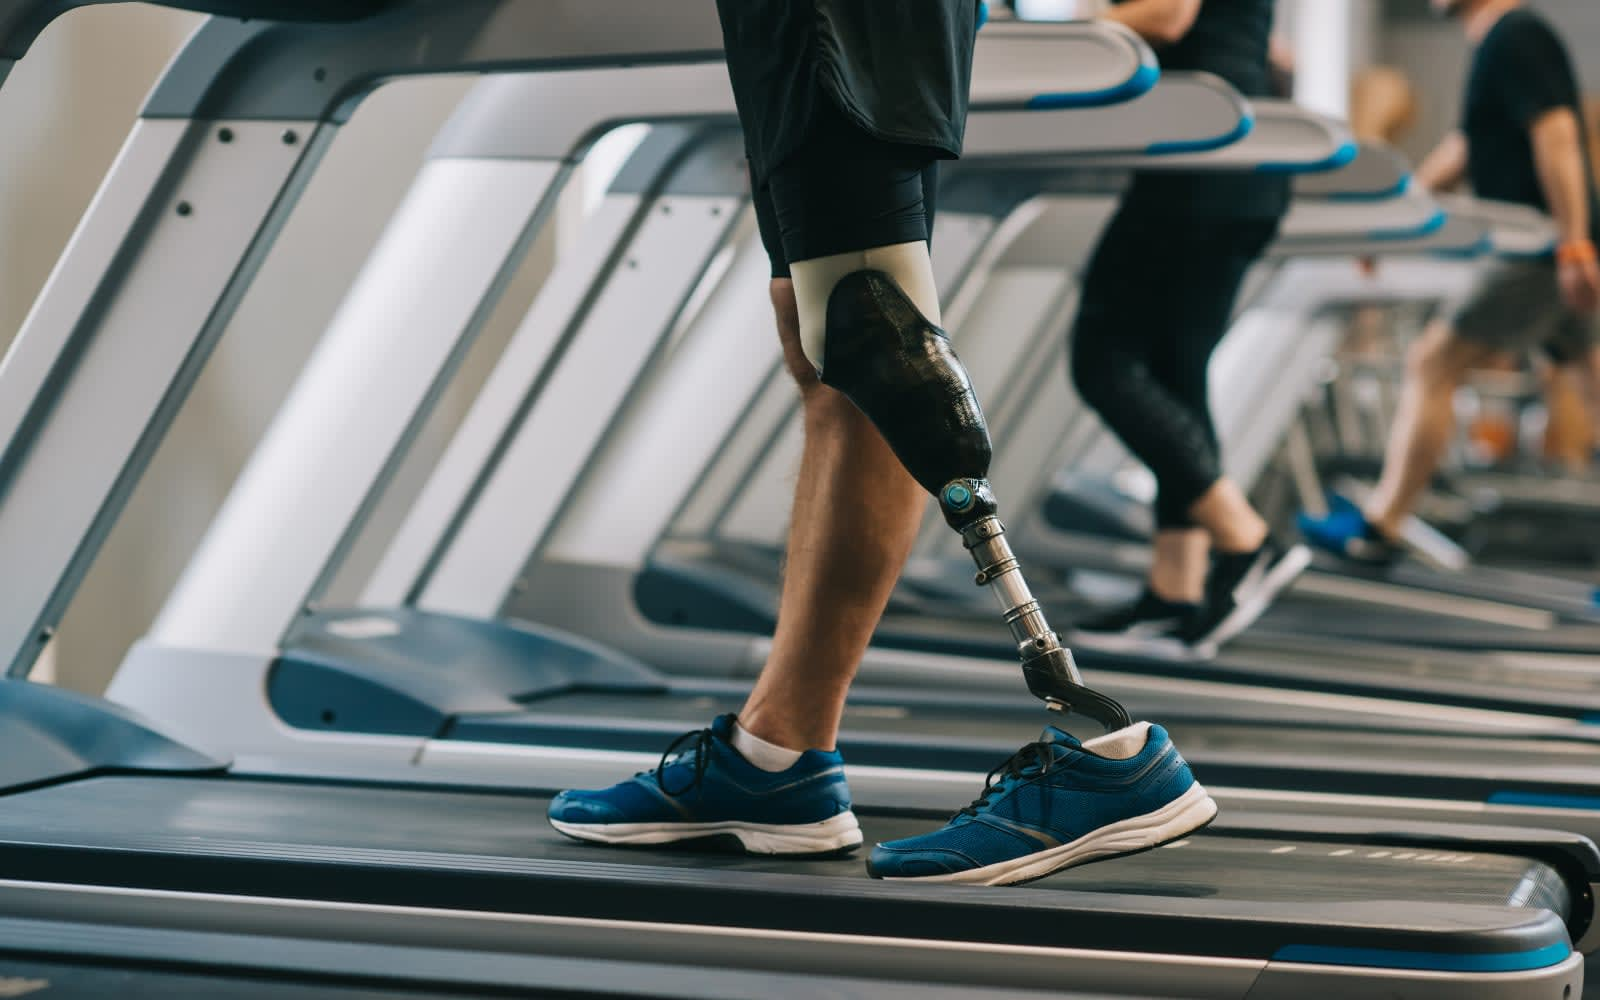 New prosthetic legs let amputees feel their foot and knee in